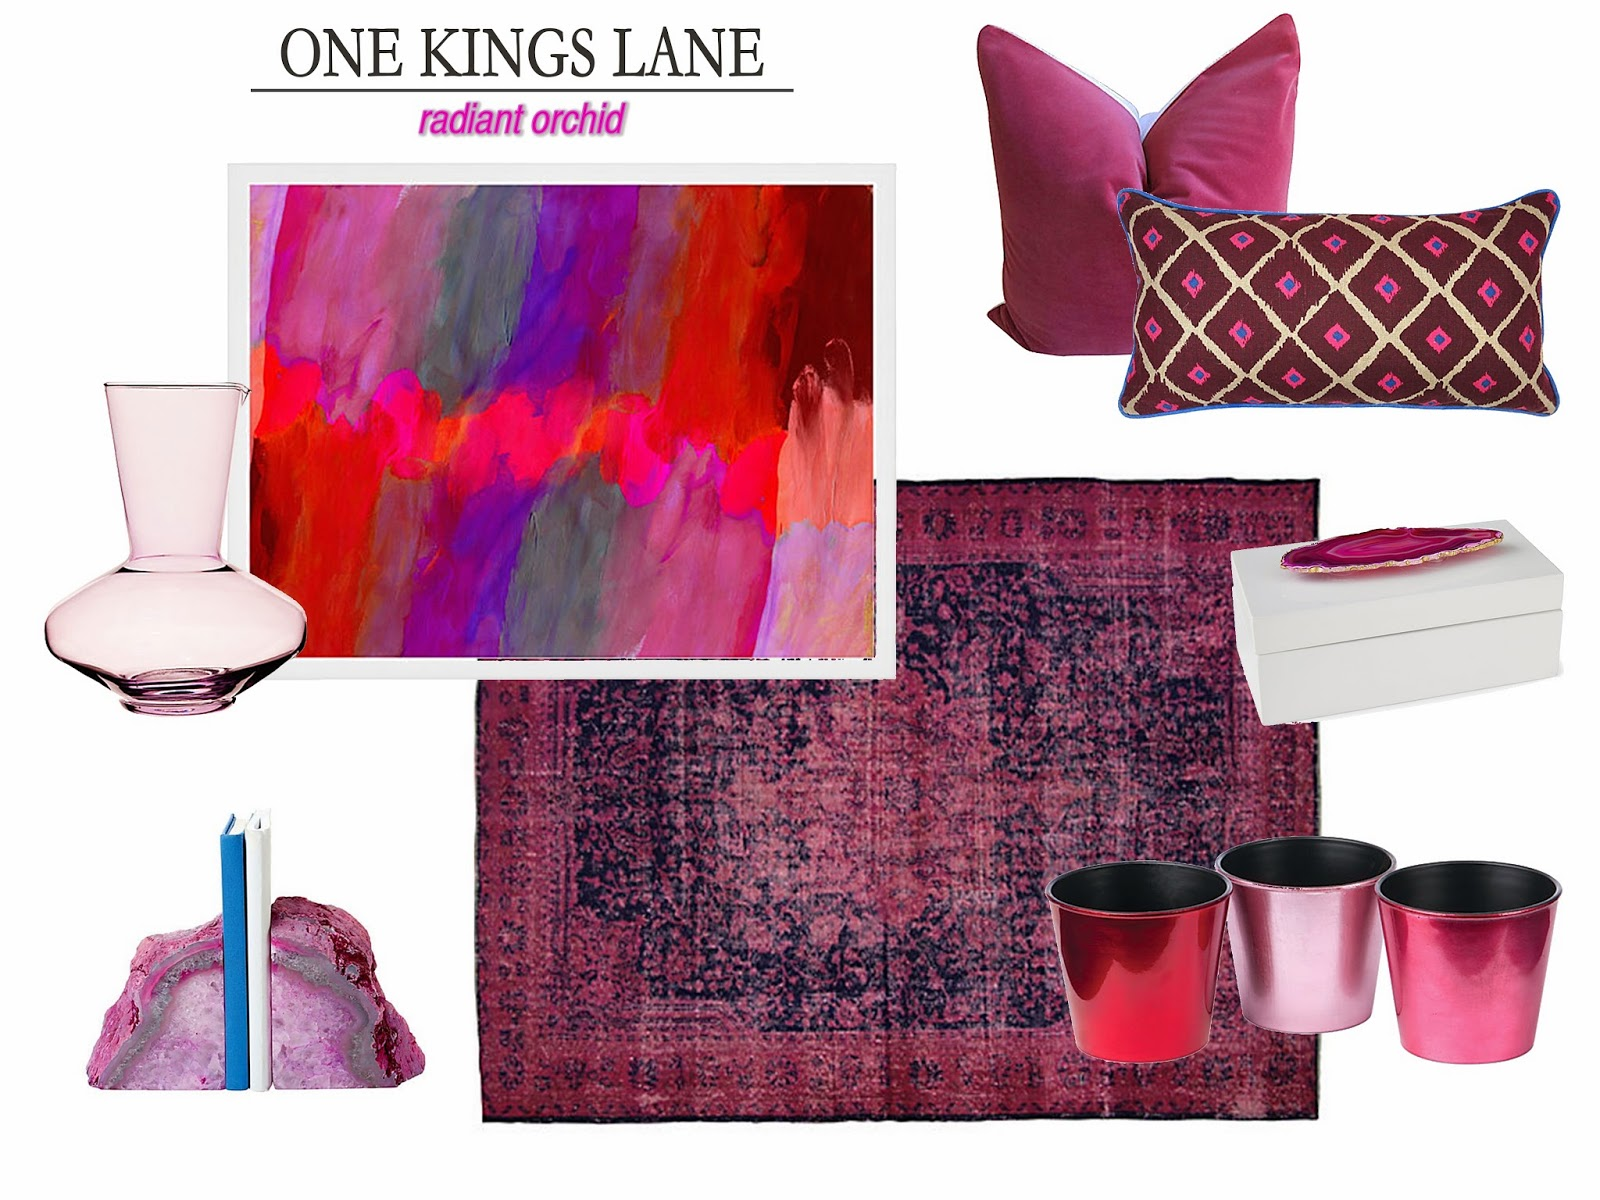 one kings lane, radiant orchid home decor, em design interiors